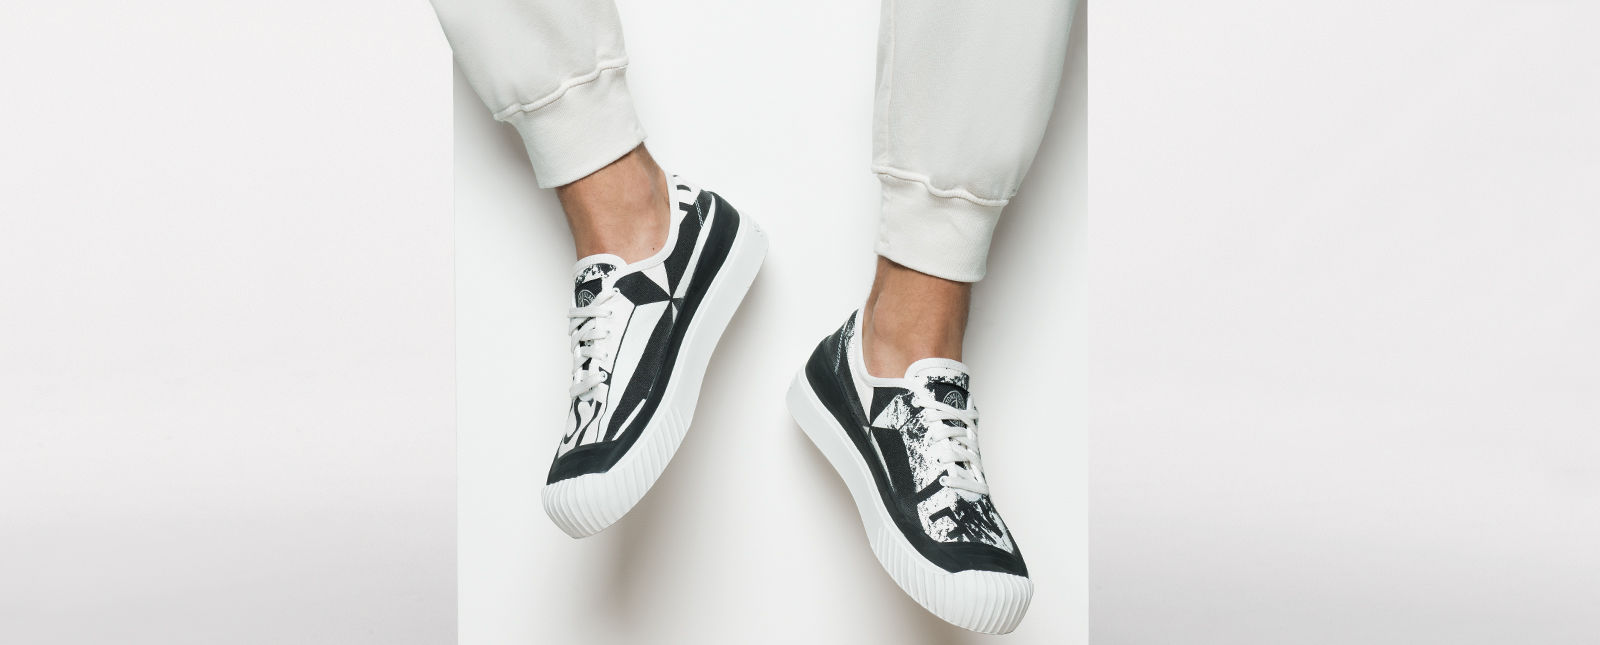 Black and white abstract printed sneakers with thick white rubber sole and white laces on the feet of a model wearing white sweatpants.